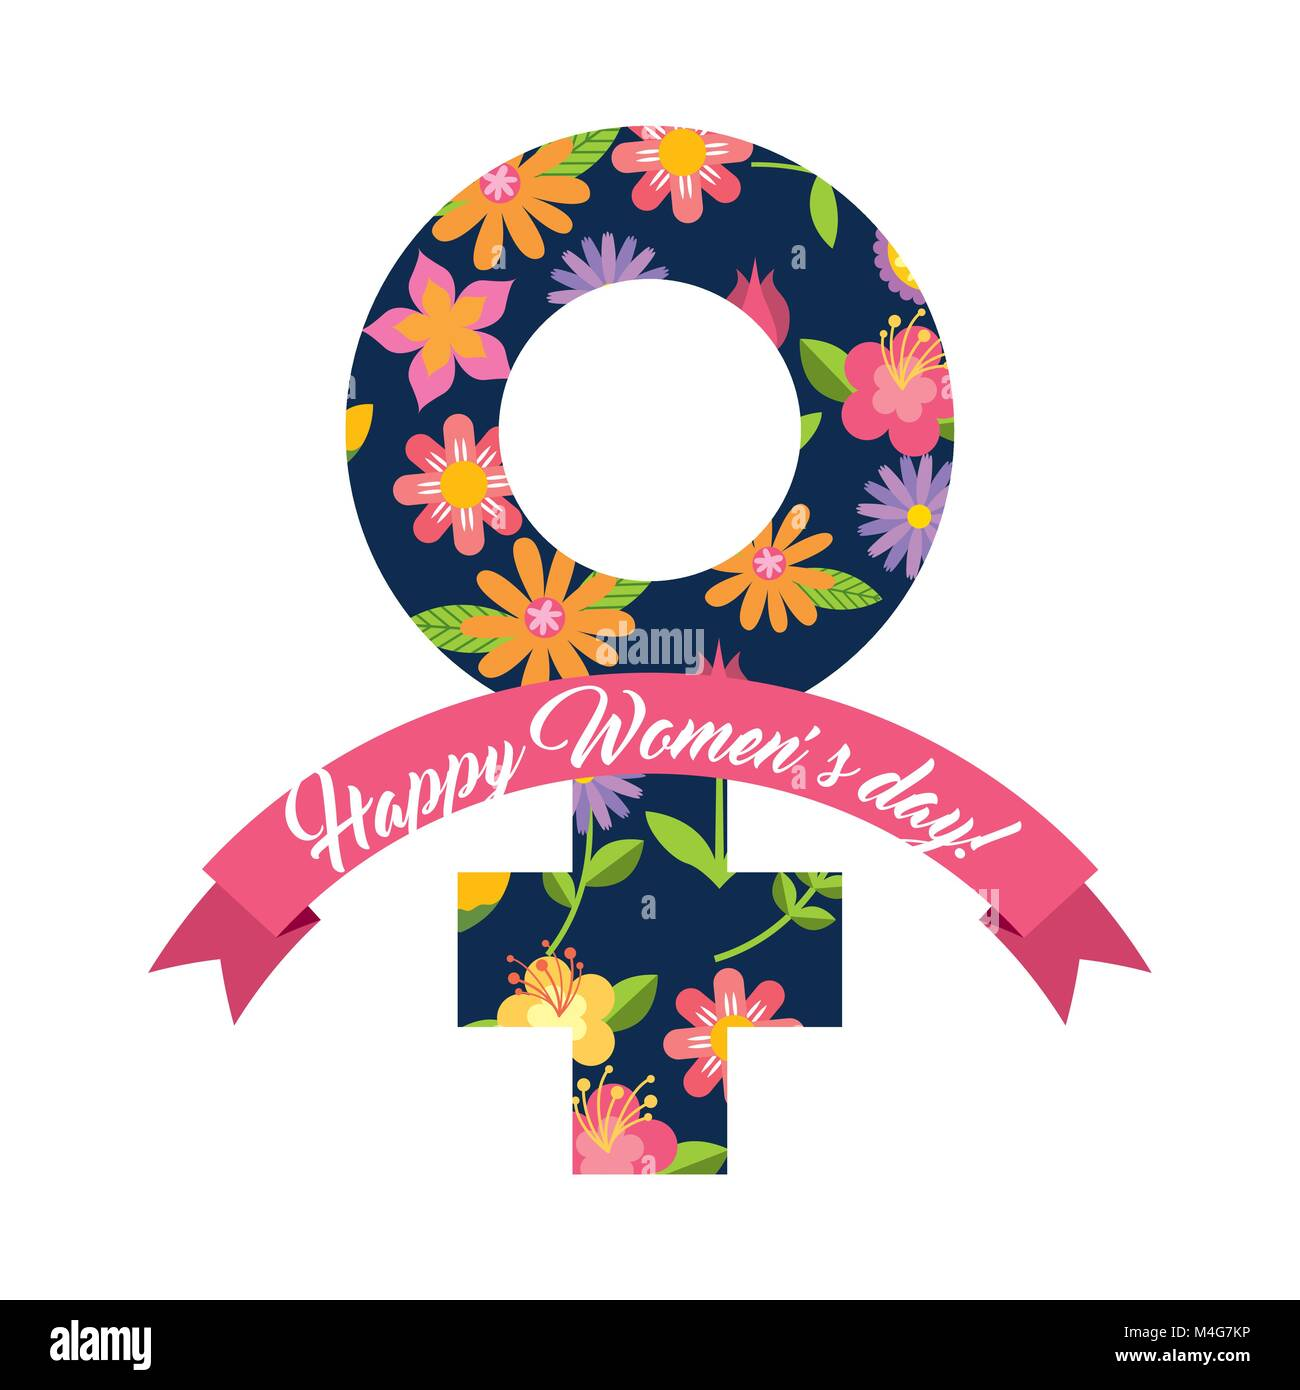 Female Gender Symbol Floral Happy Womens Day Card Ribbon Stock